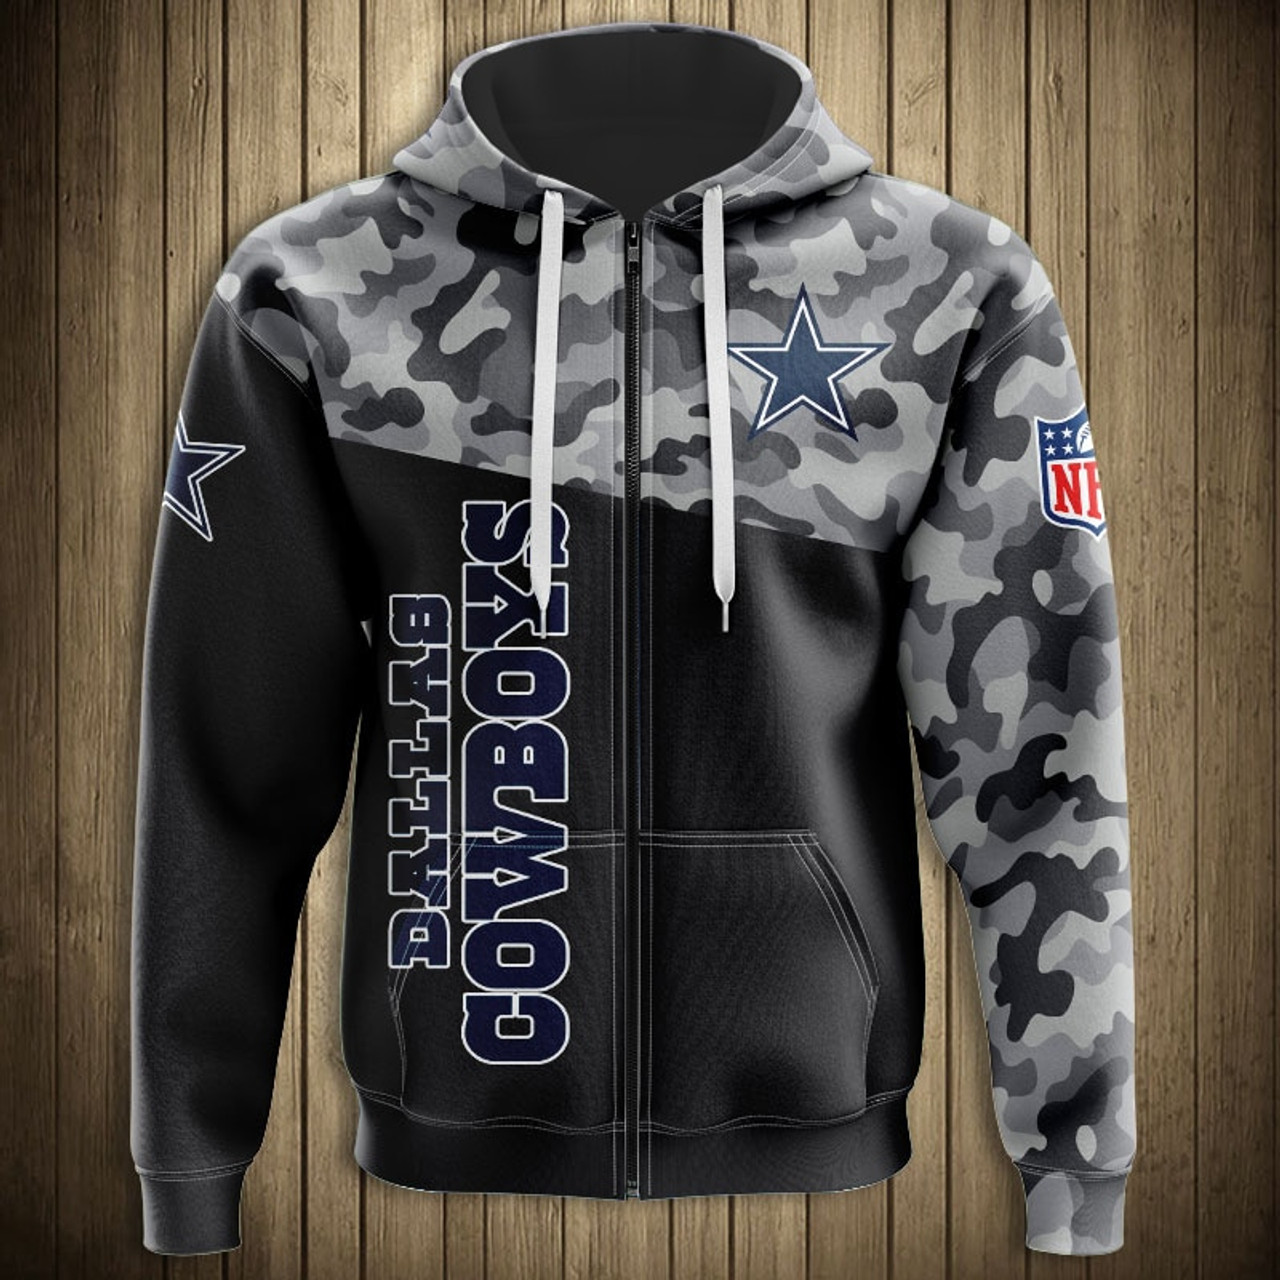 info for f4e5a 05843 **(OFFICIAL-N.F.L.DALLAS-COWBOYS-CAMO.DESIGN-ZIPPERED-HOODIES/3D-CUSTOM-COWBOYS-LOGOS  & OFFICIAL-COWBOYS-TEAM-COLORS/DETAILED-3D-GRAPHIC-PRINTED-DOUBL...